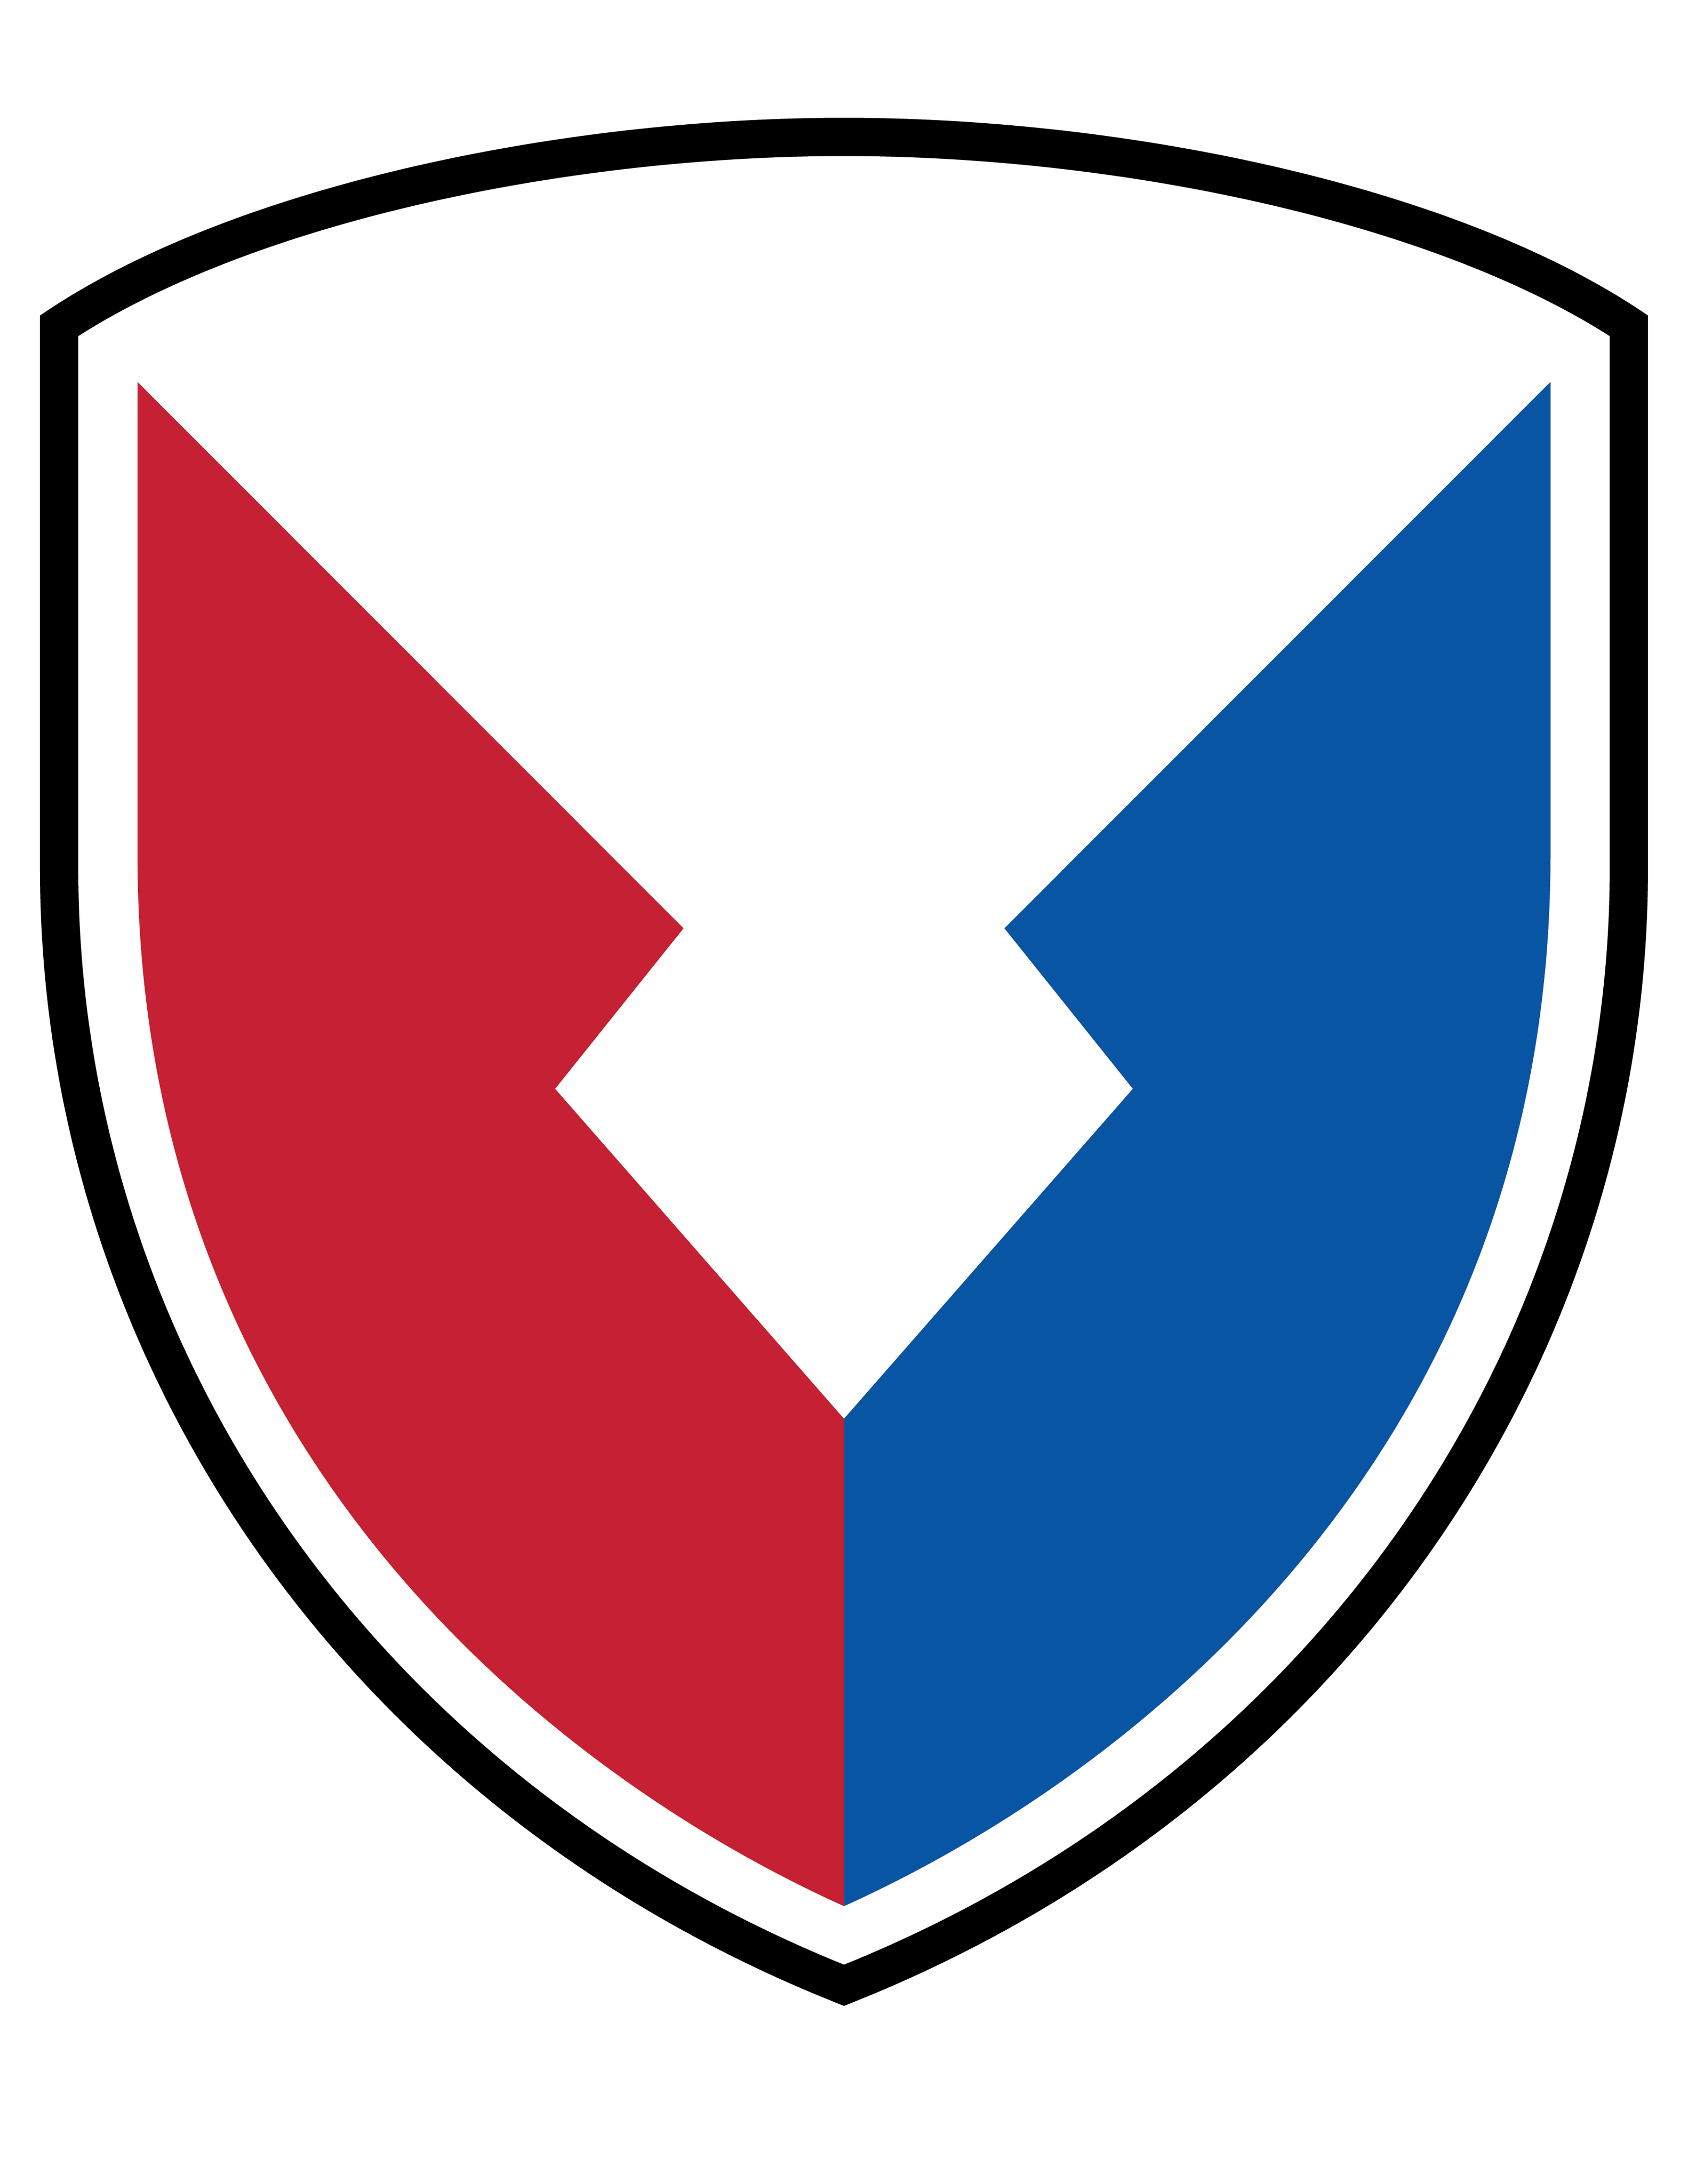 Logo - US Army Material Command (AMC)